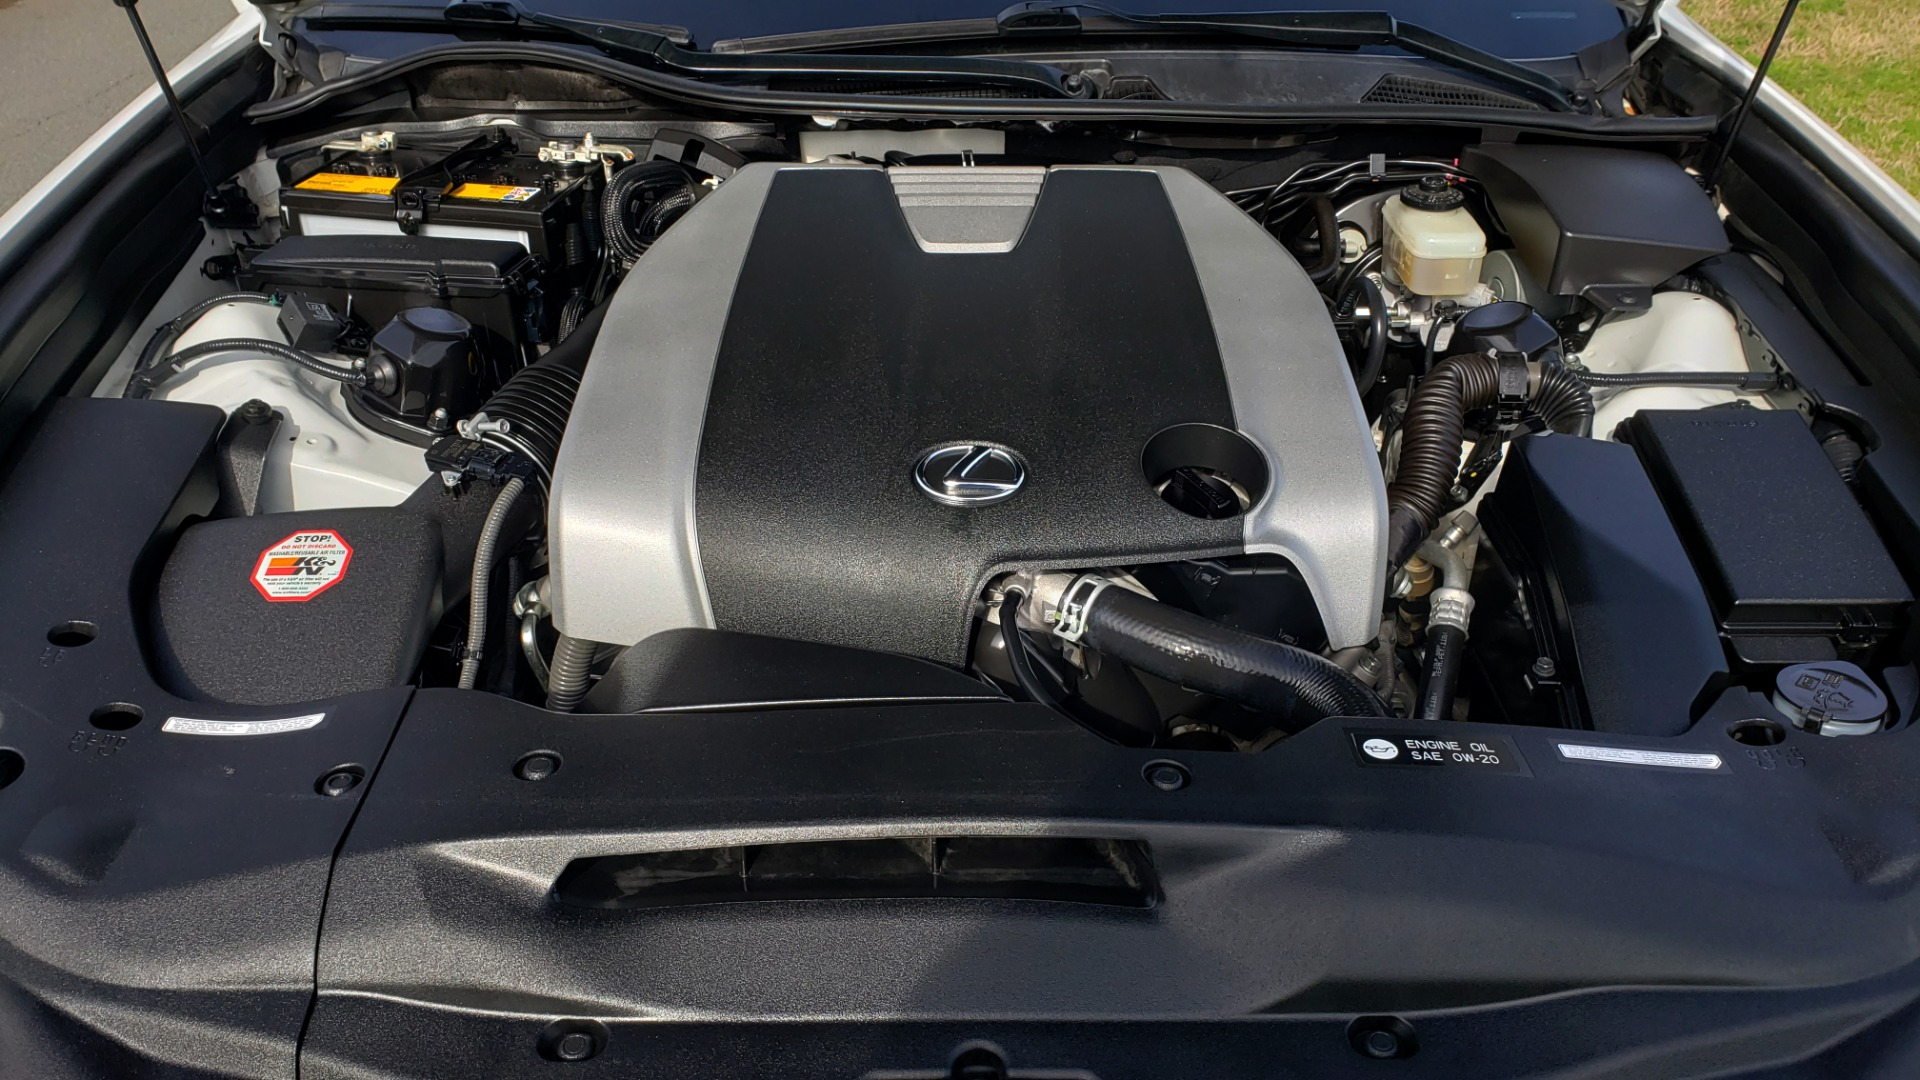 Used 2013 Lexus GS 350 F-SPORT / NAV / SUNROOF / BSM / PRK ASST / REARVIEW for sale Sold at Formula Imports in Charlotte NC 28227 11